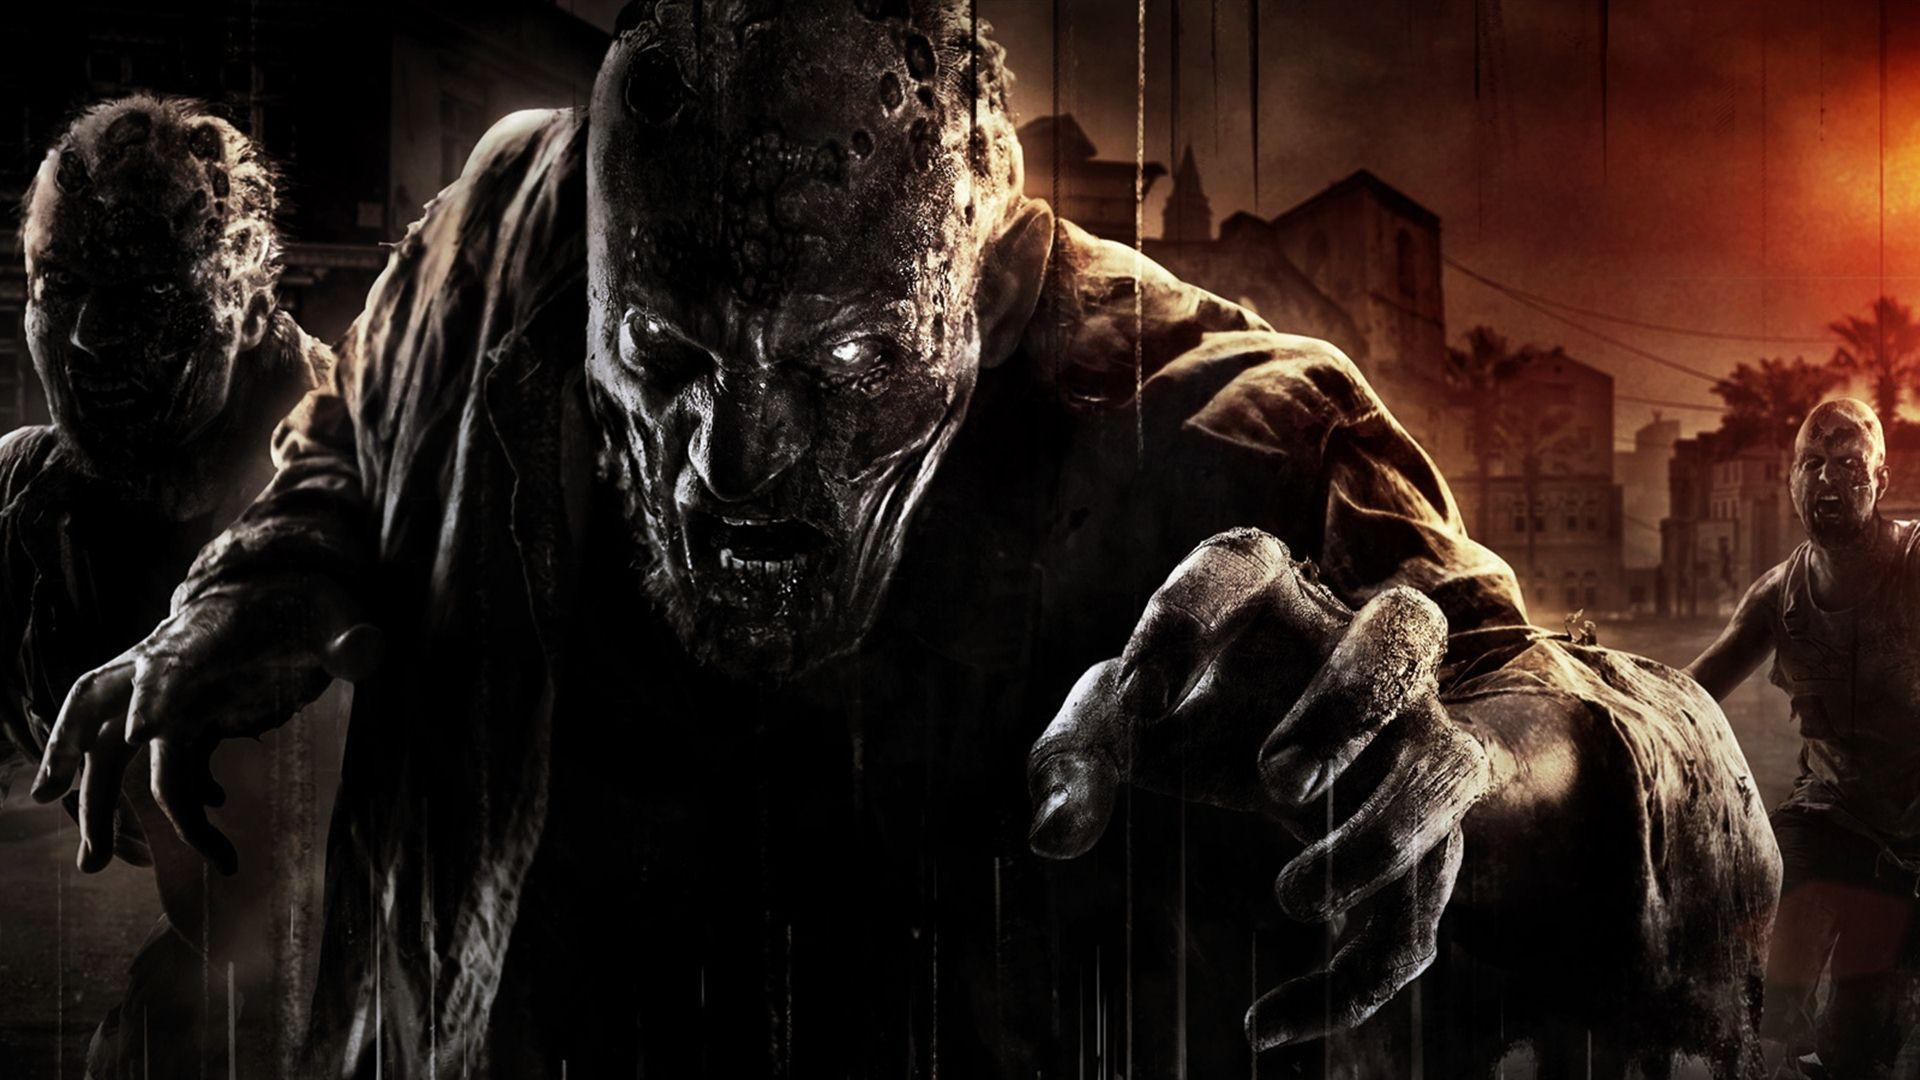 Zombies Wallpapers HD - Wallpaper Cave